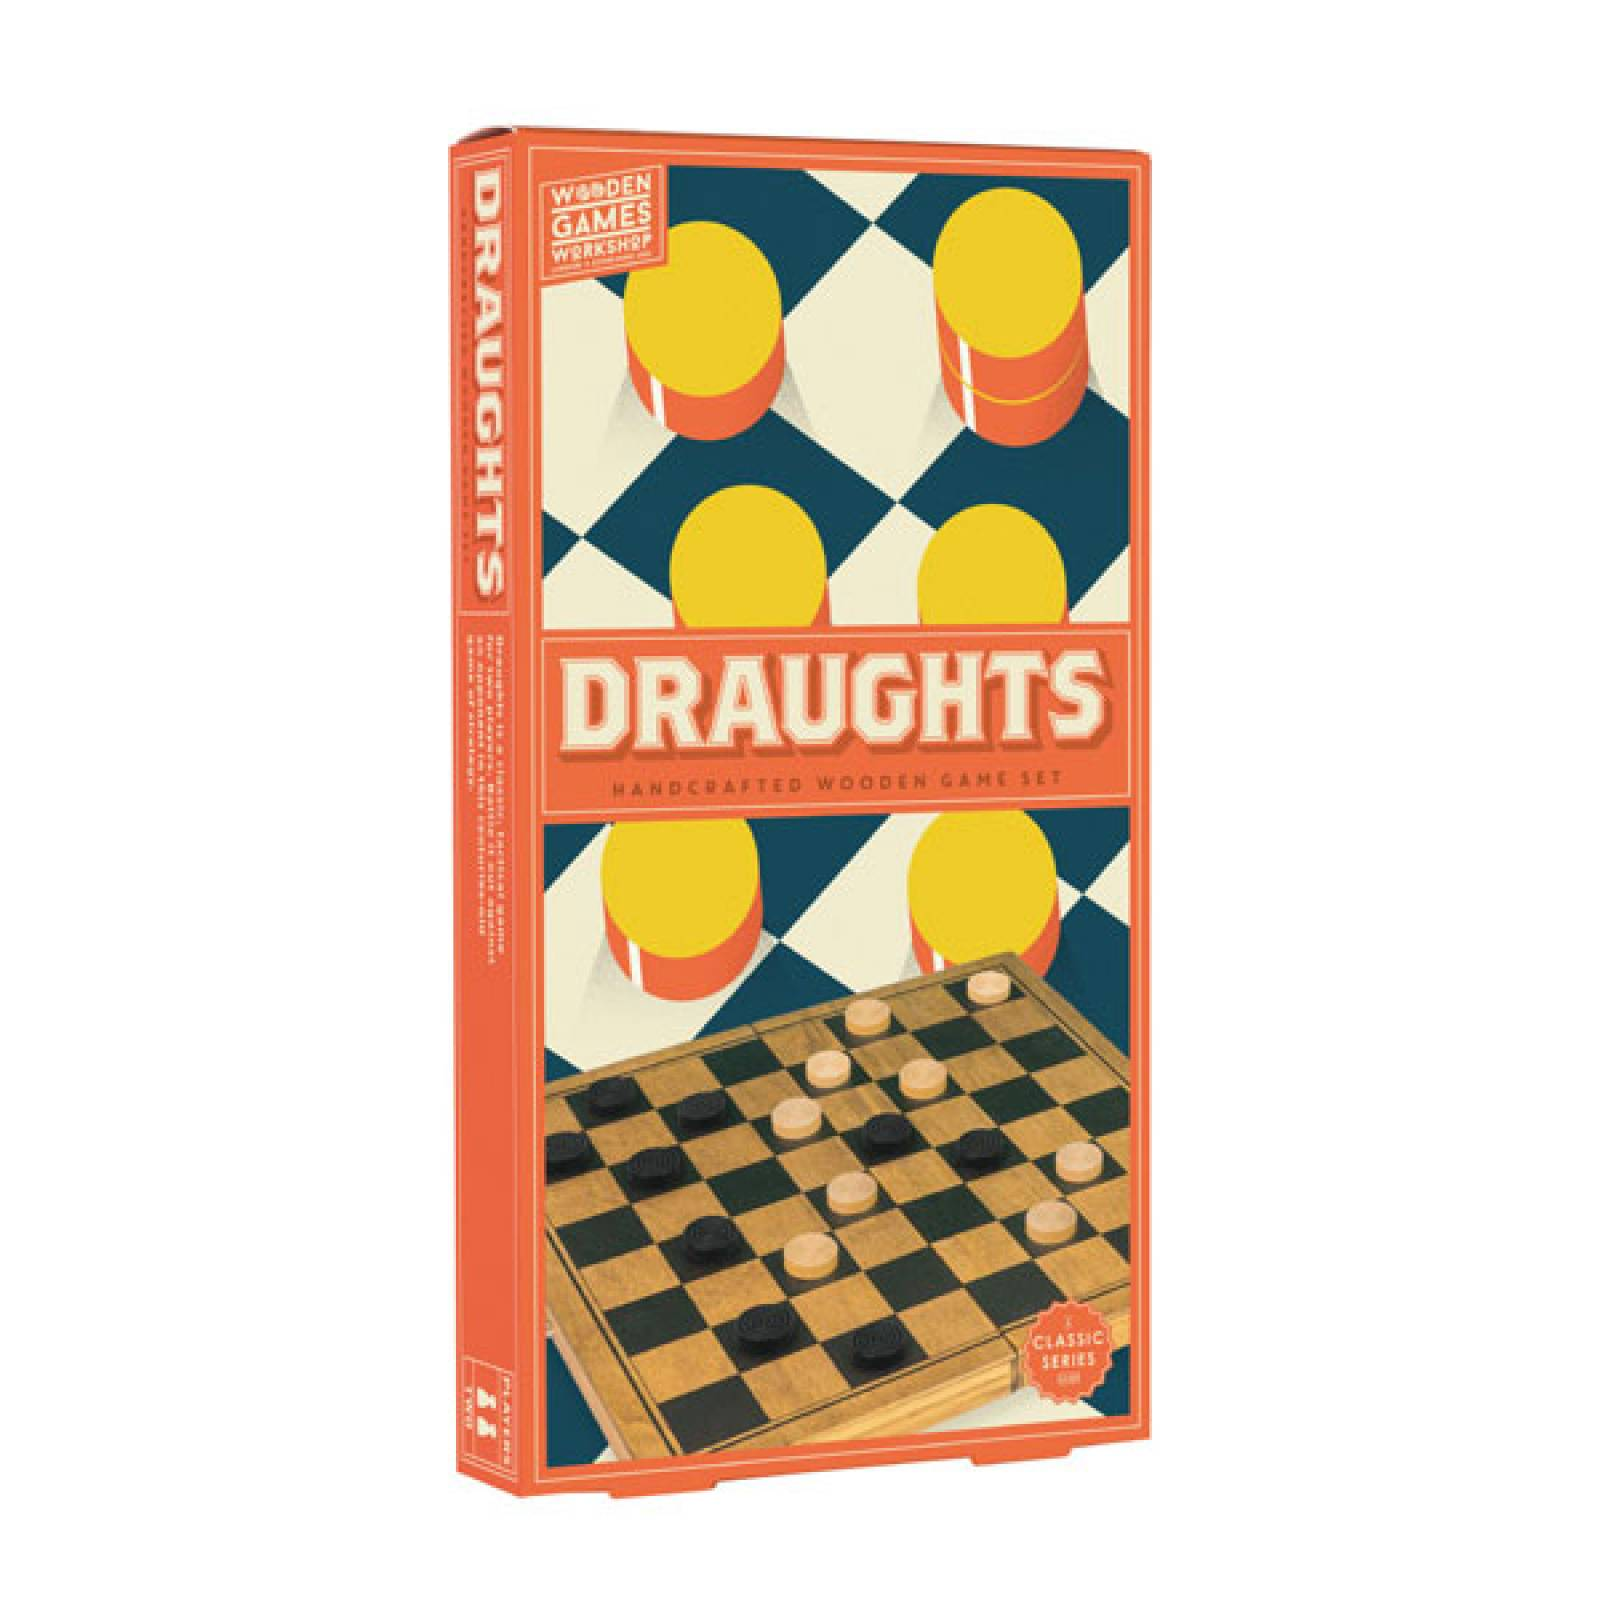 DRAUGHTS Handcrafted Wooden Board Game